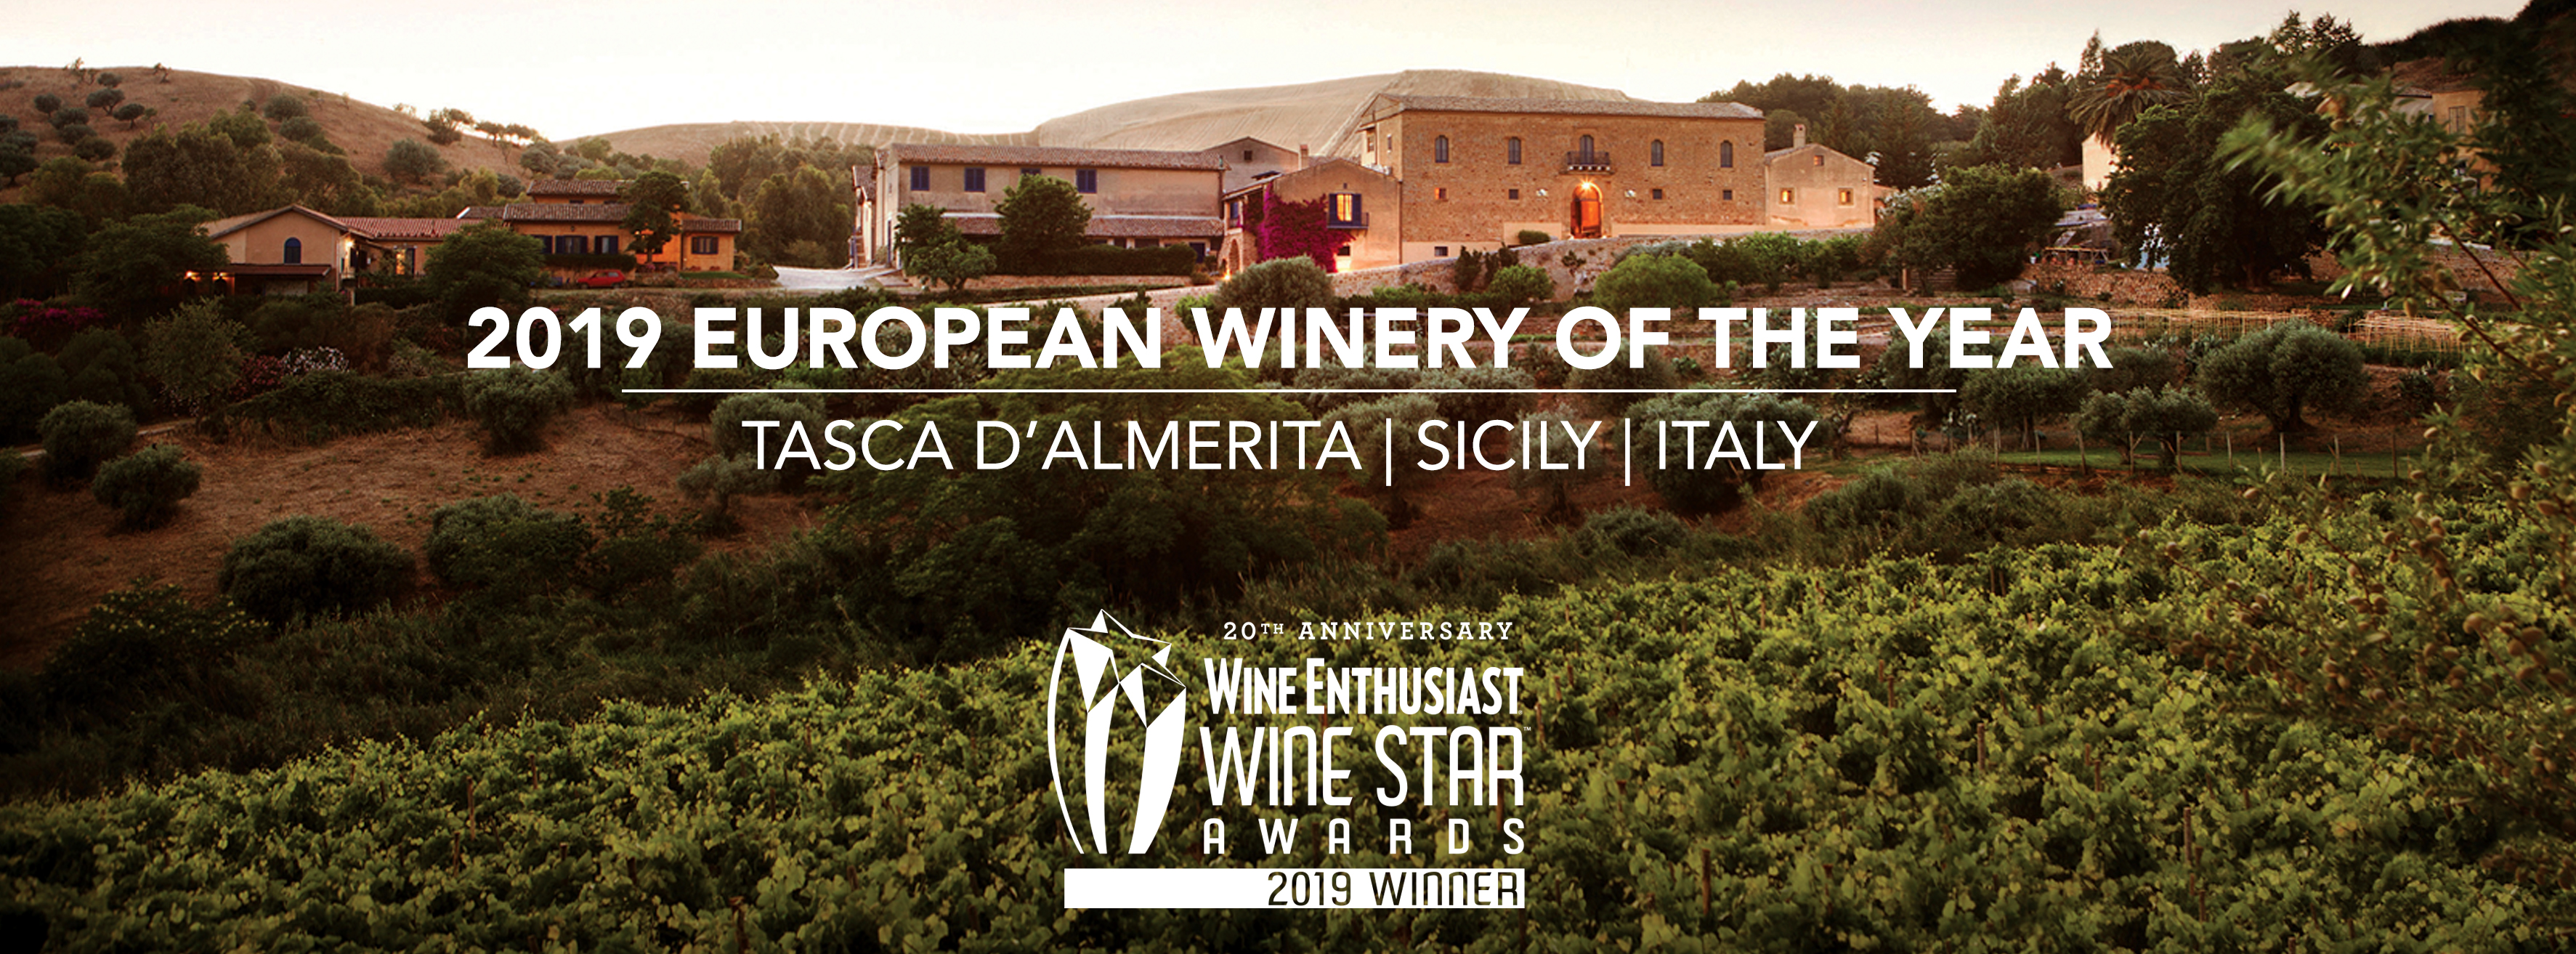 Wine Enthusiast names Tasca d'Almerita the 2019 European winery of the year.